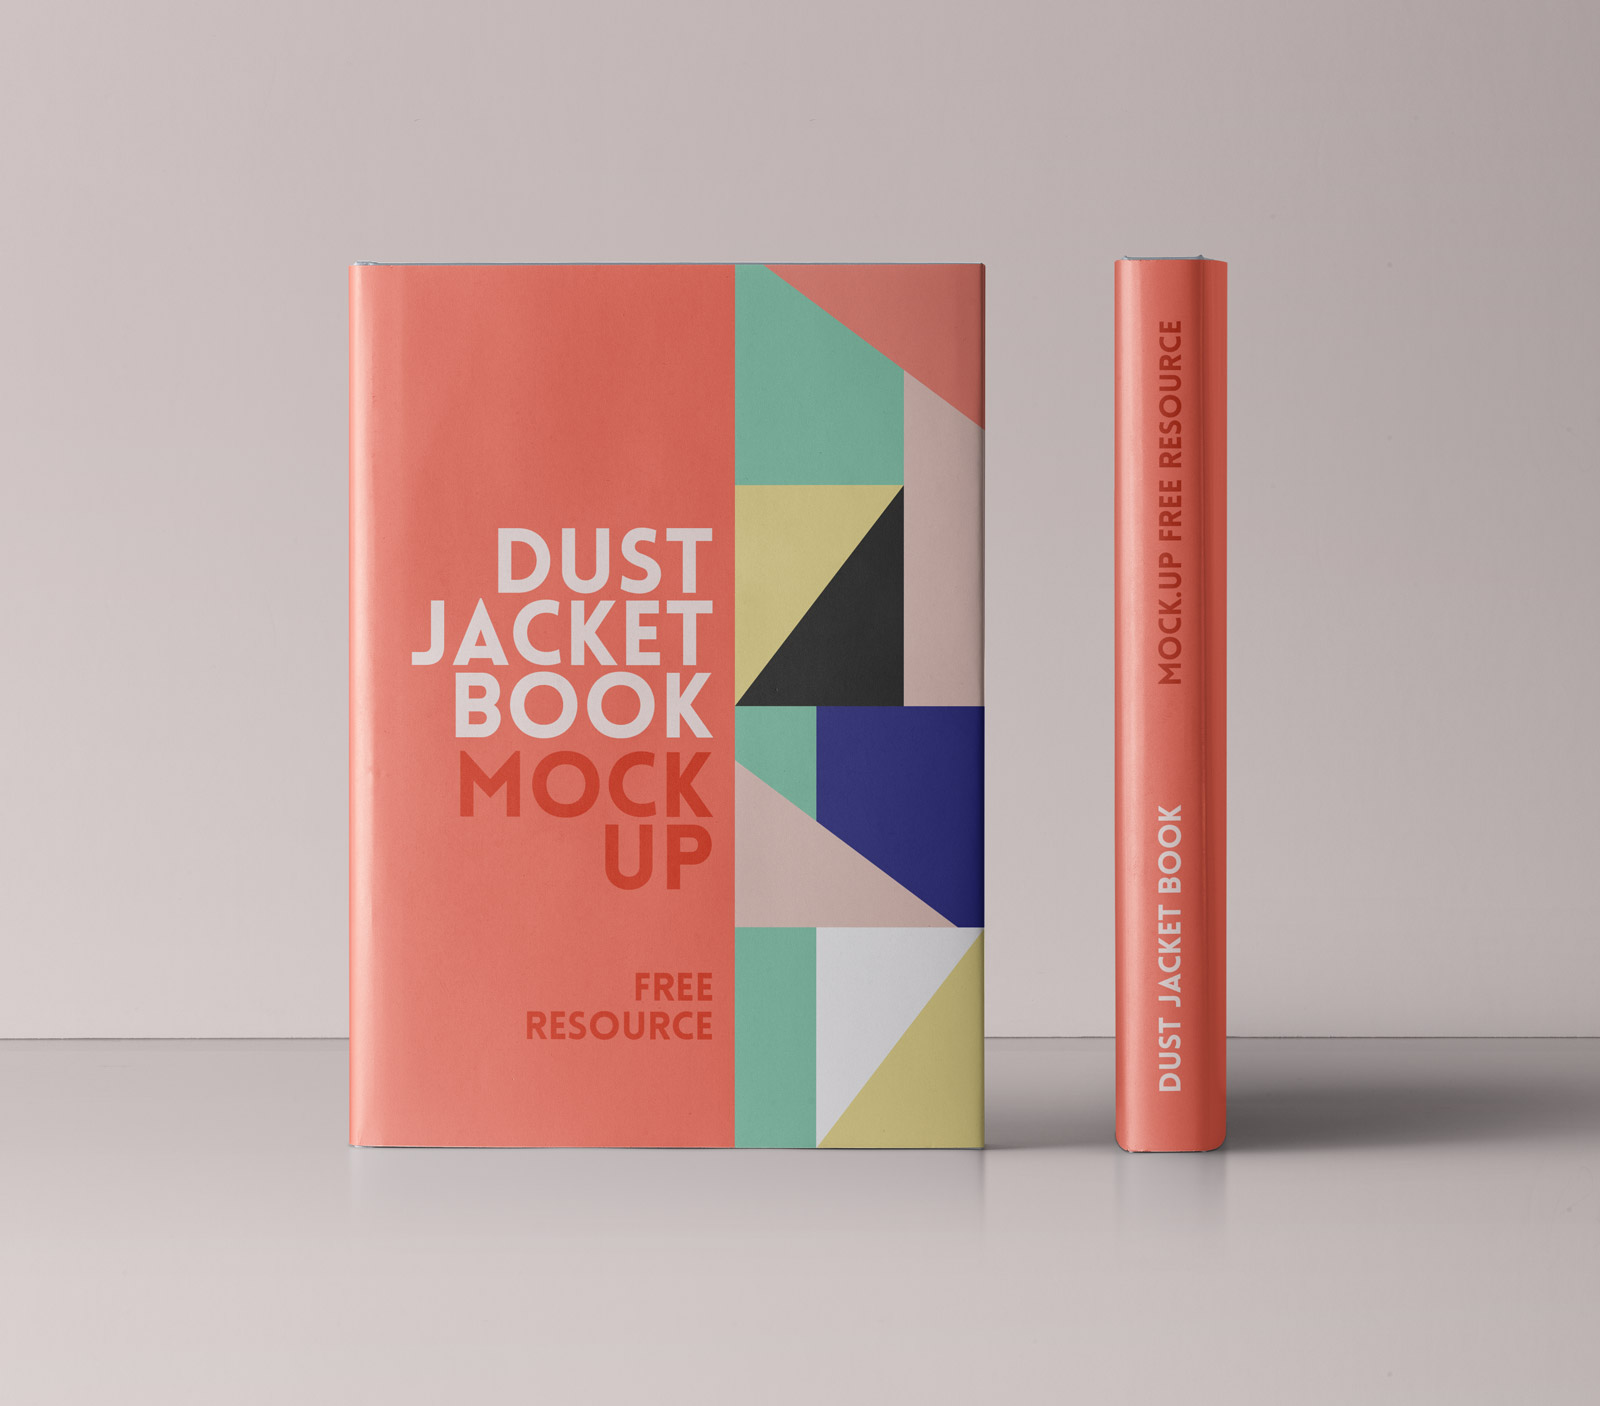 Free-Title-&-Spine-of-Book-Mockup-PSD